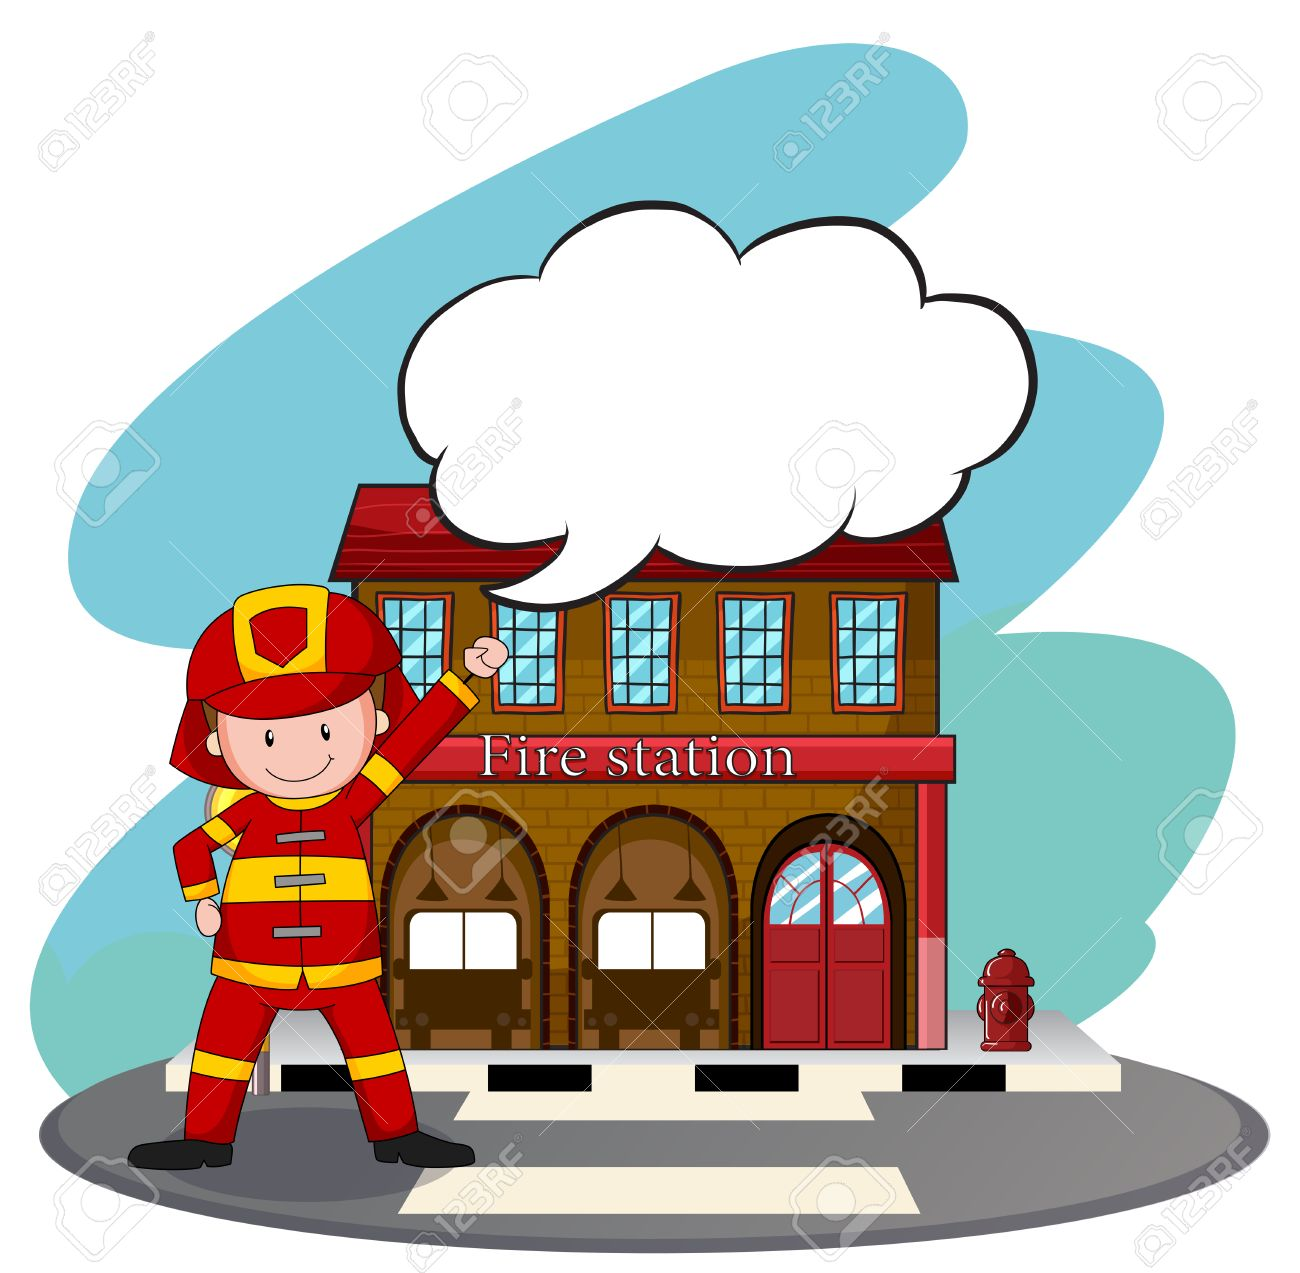 hight resolution of firemen working at the fire station illustration stock vector 45534997